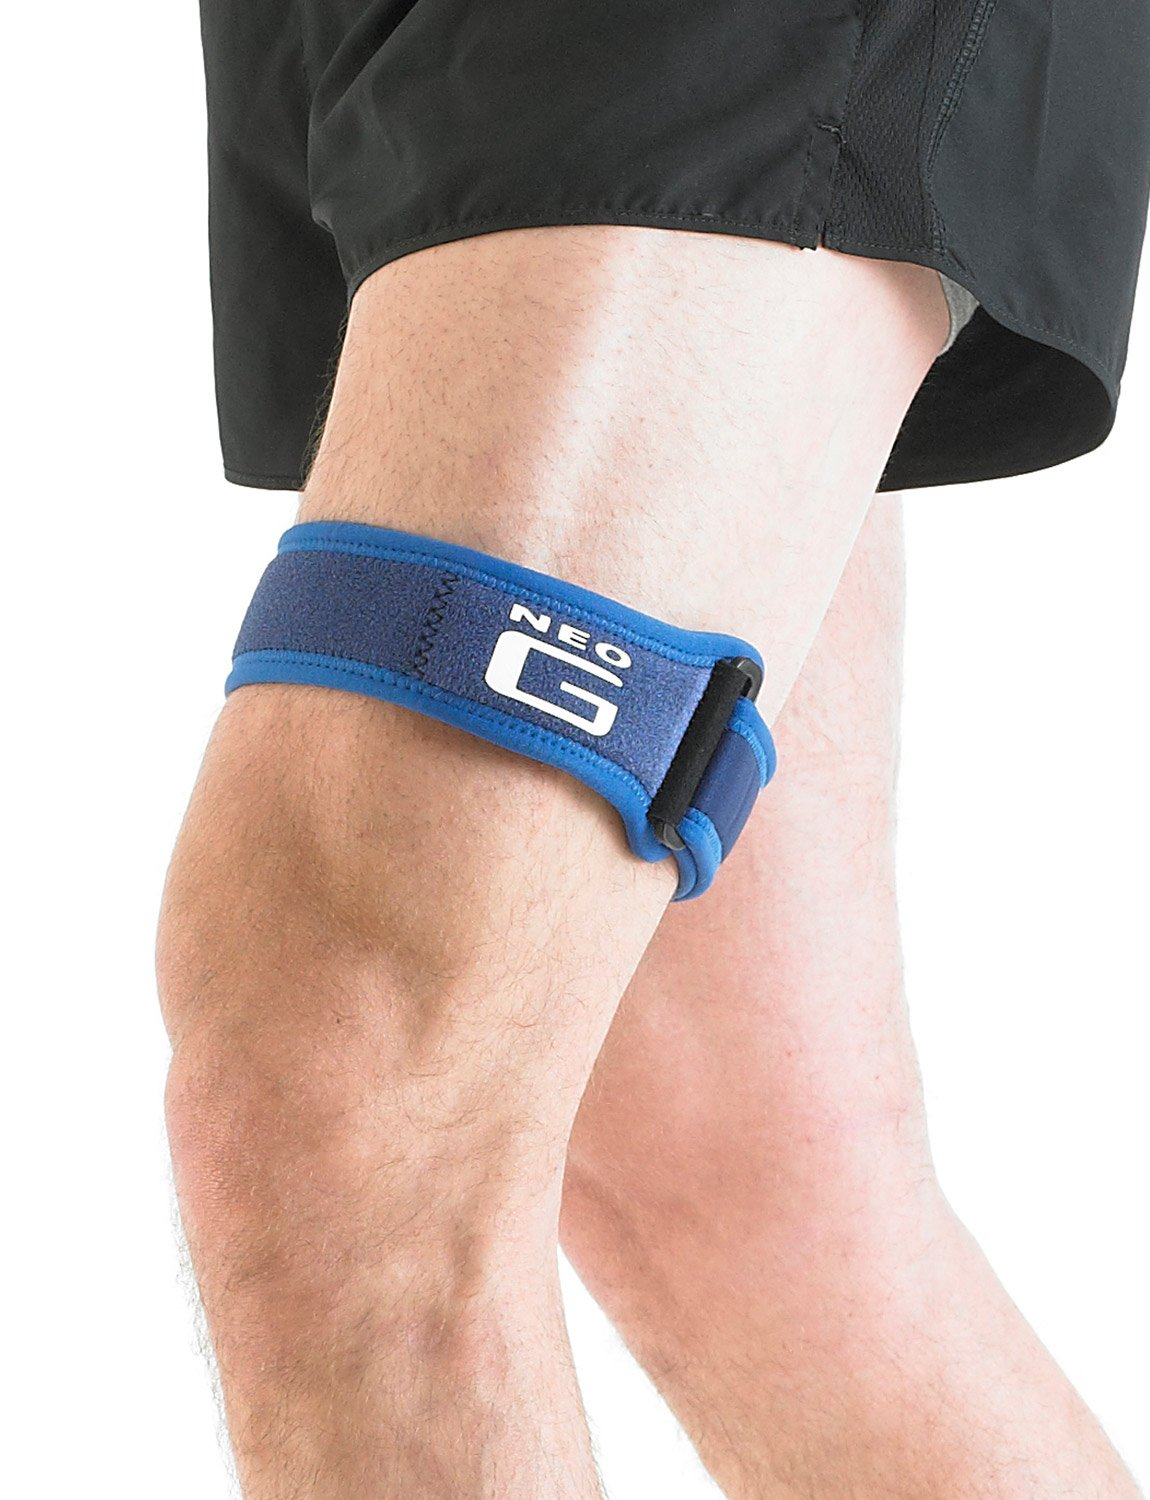 Neo G ITB Band - Knee Strap for Jumpers Knee, Tendonitis, Joint Pain, Tendon Overuse, Basketball, Running, Soccer, Tennis - Adjustable Compression Support - Class 1 Medical Device - One Size - Blue by Neo-G